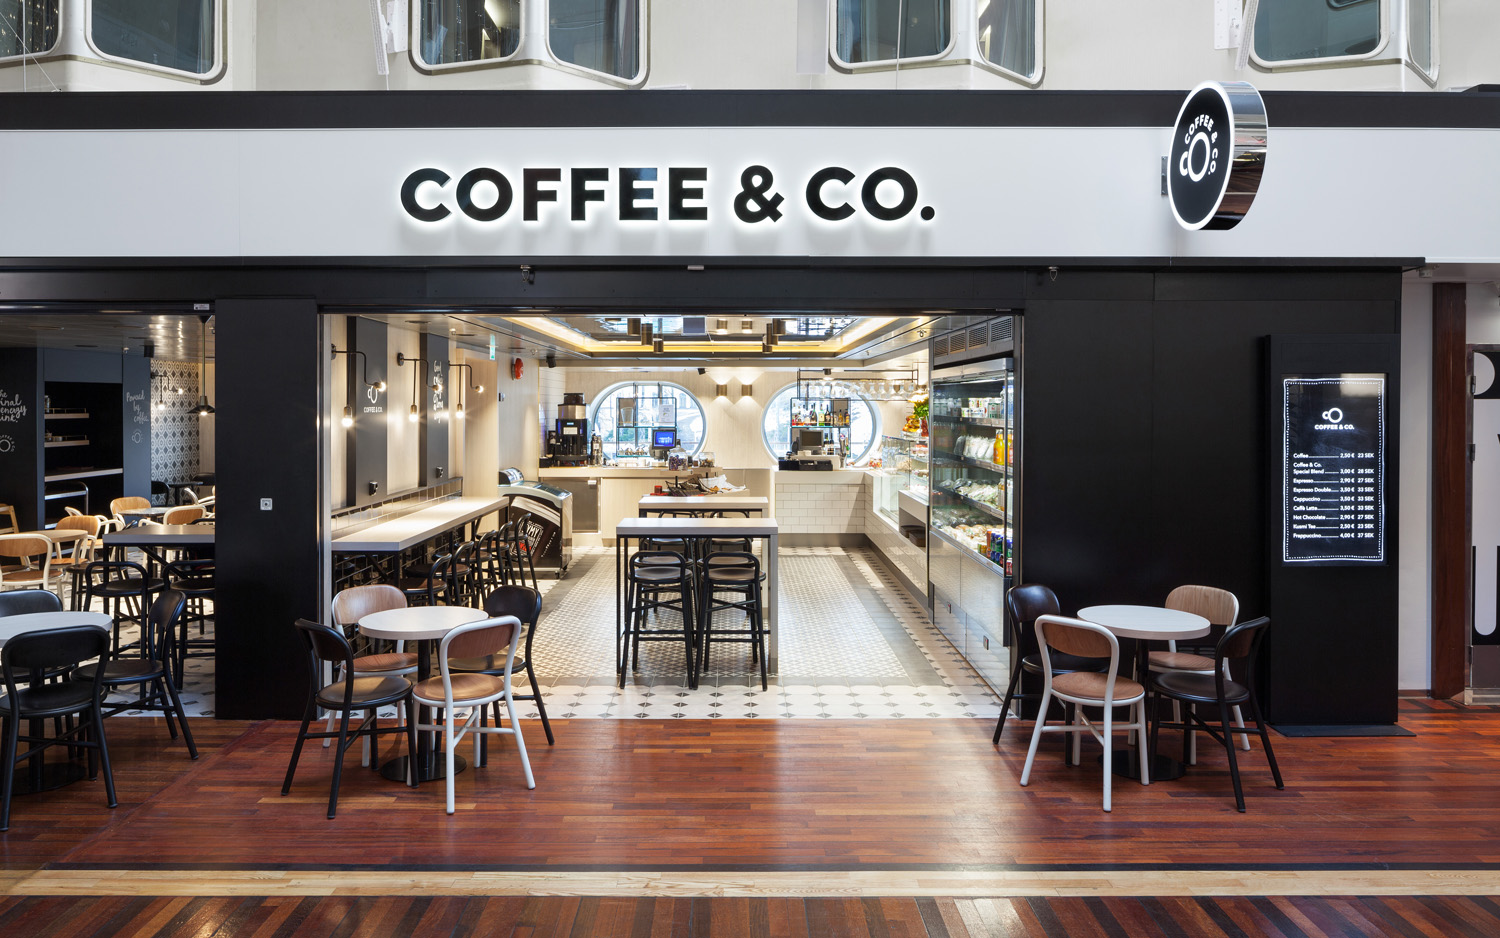 Brand identity and signage by Bond for cruise ship cafeteria concept Coffee & Co.